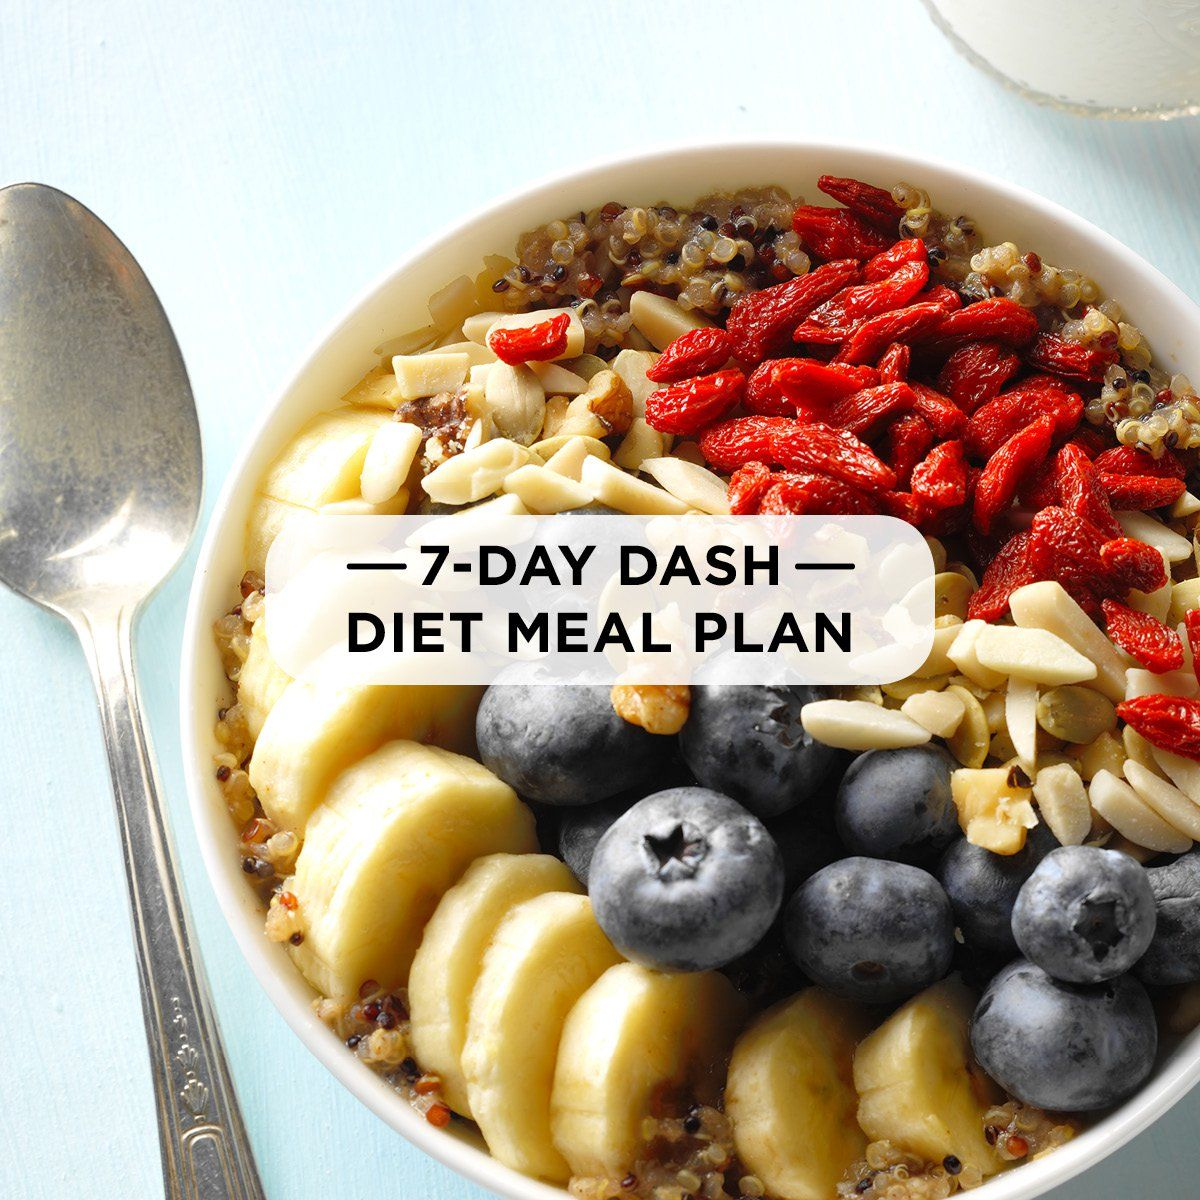 7-Day DASH Diet Meal Plan images